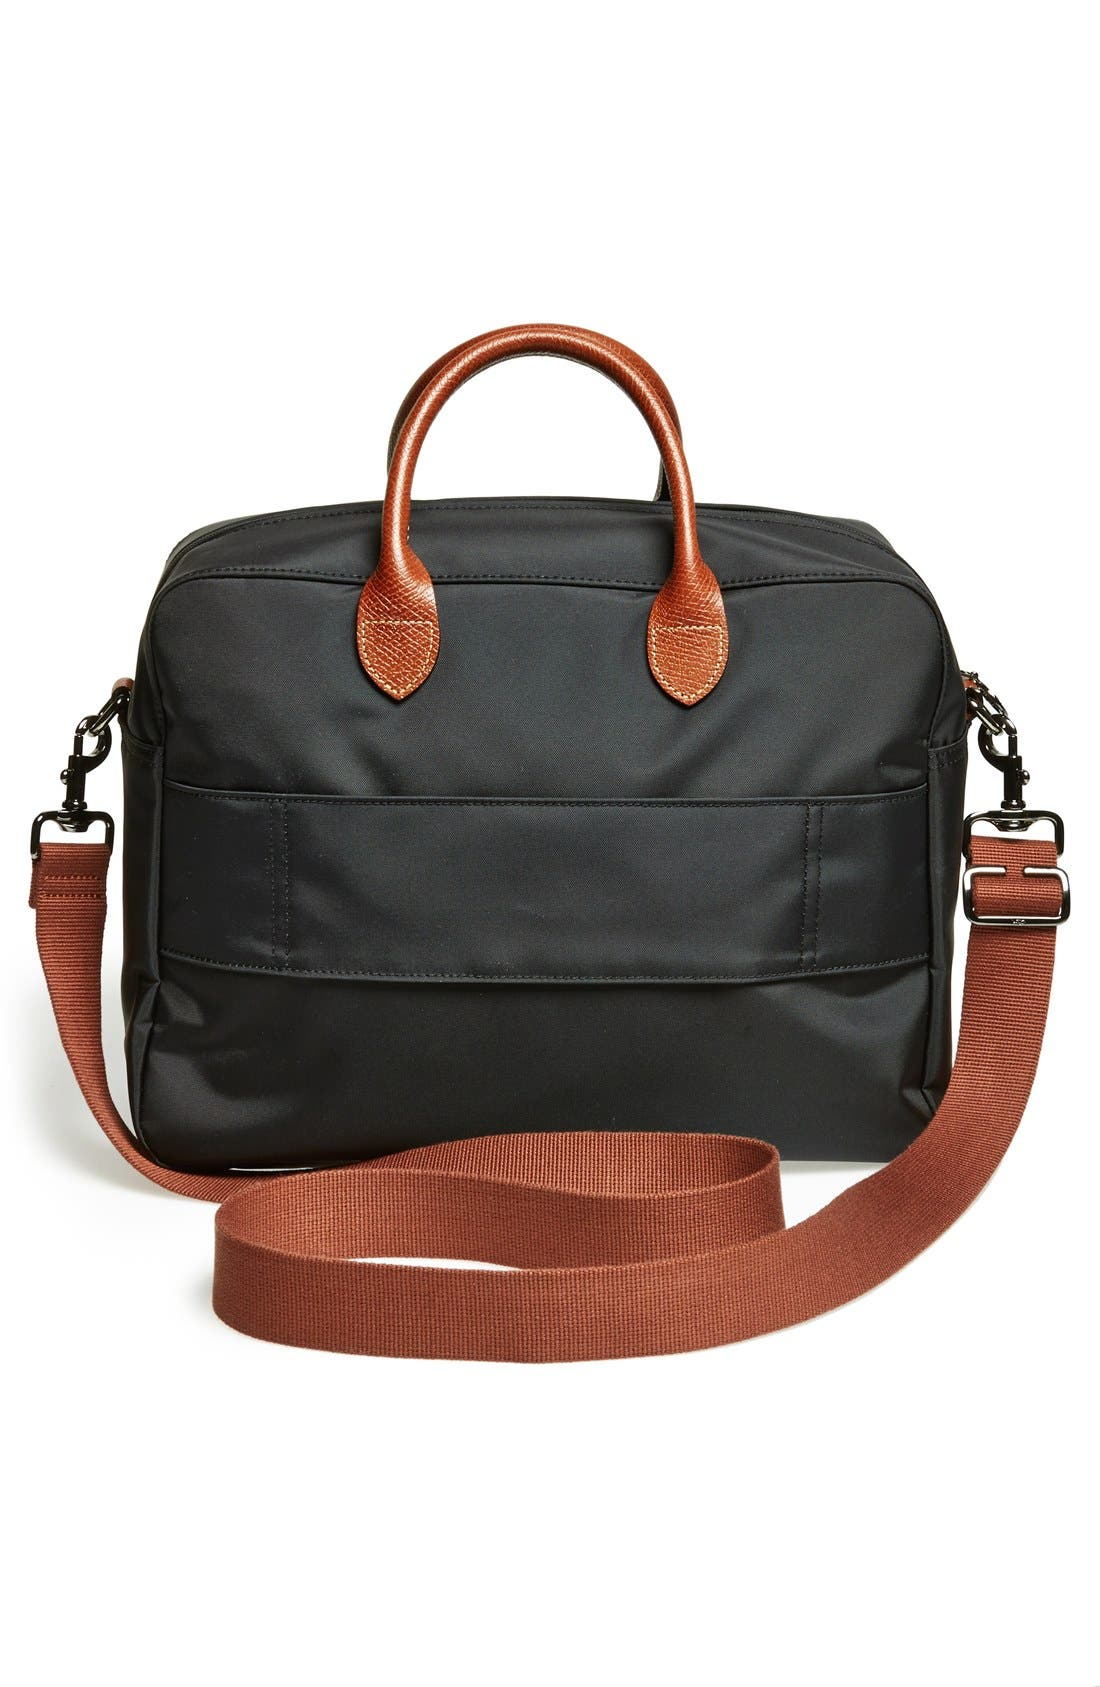 Alternate Image 3  - Longchamp 'Le Pliage' Travel Bag (14 Inch)